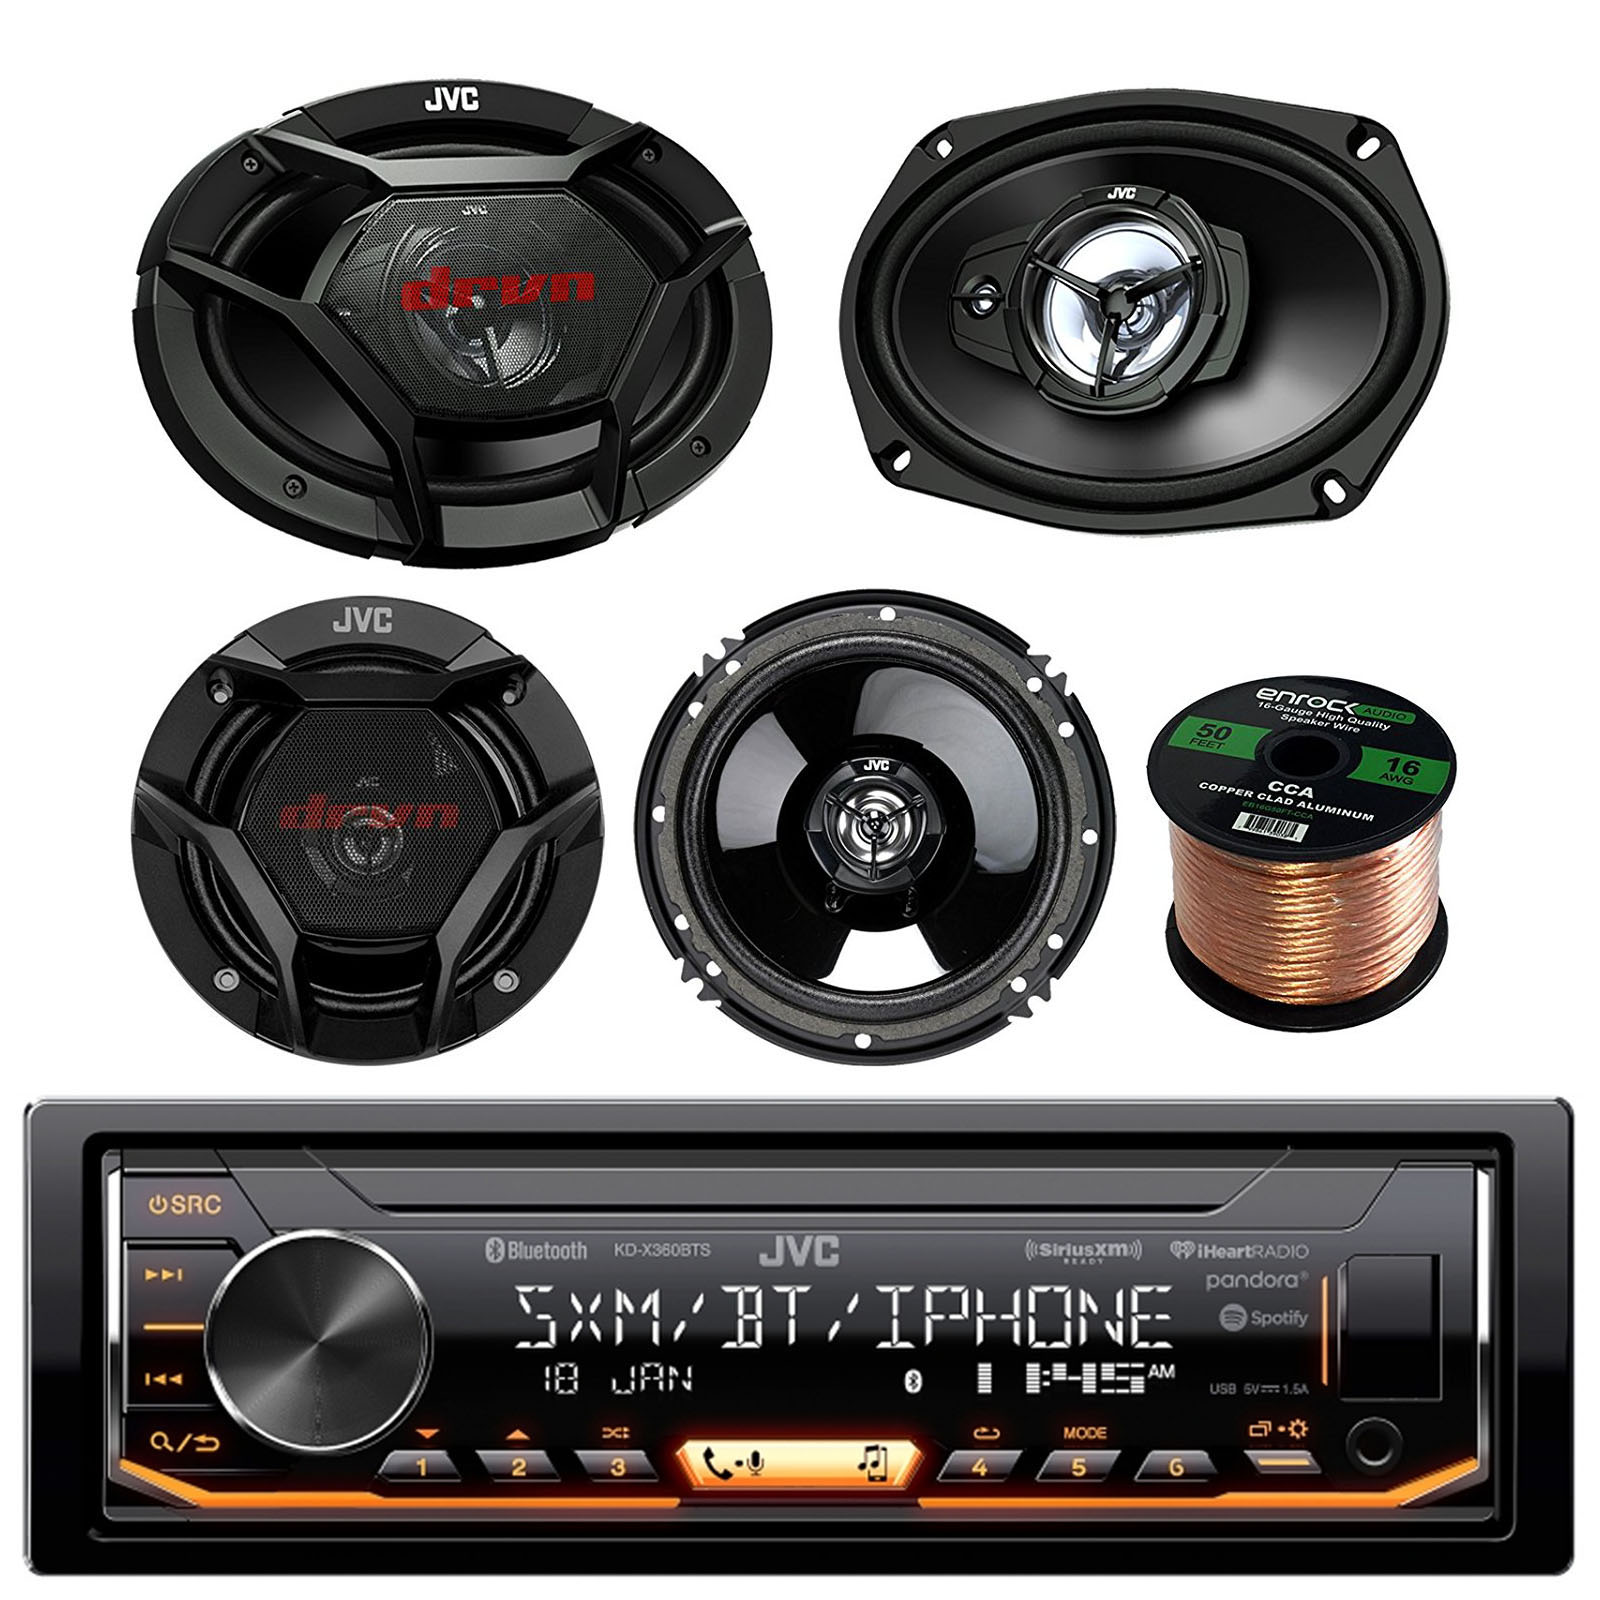 "JVC KD-X360BTS Single-DIN AM/FM USB AUX Car Stereo Receiver Bundle Combo With 2x JVC CS-DR6930 6x9"" 3-Way Vehicle Coaxial Speakers + 2x CS-DR620 6.5"" Inch 2-Way Audio Speakers + 50 Feet 16-Gauge Wire"